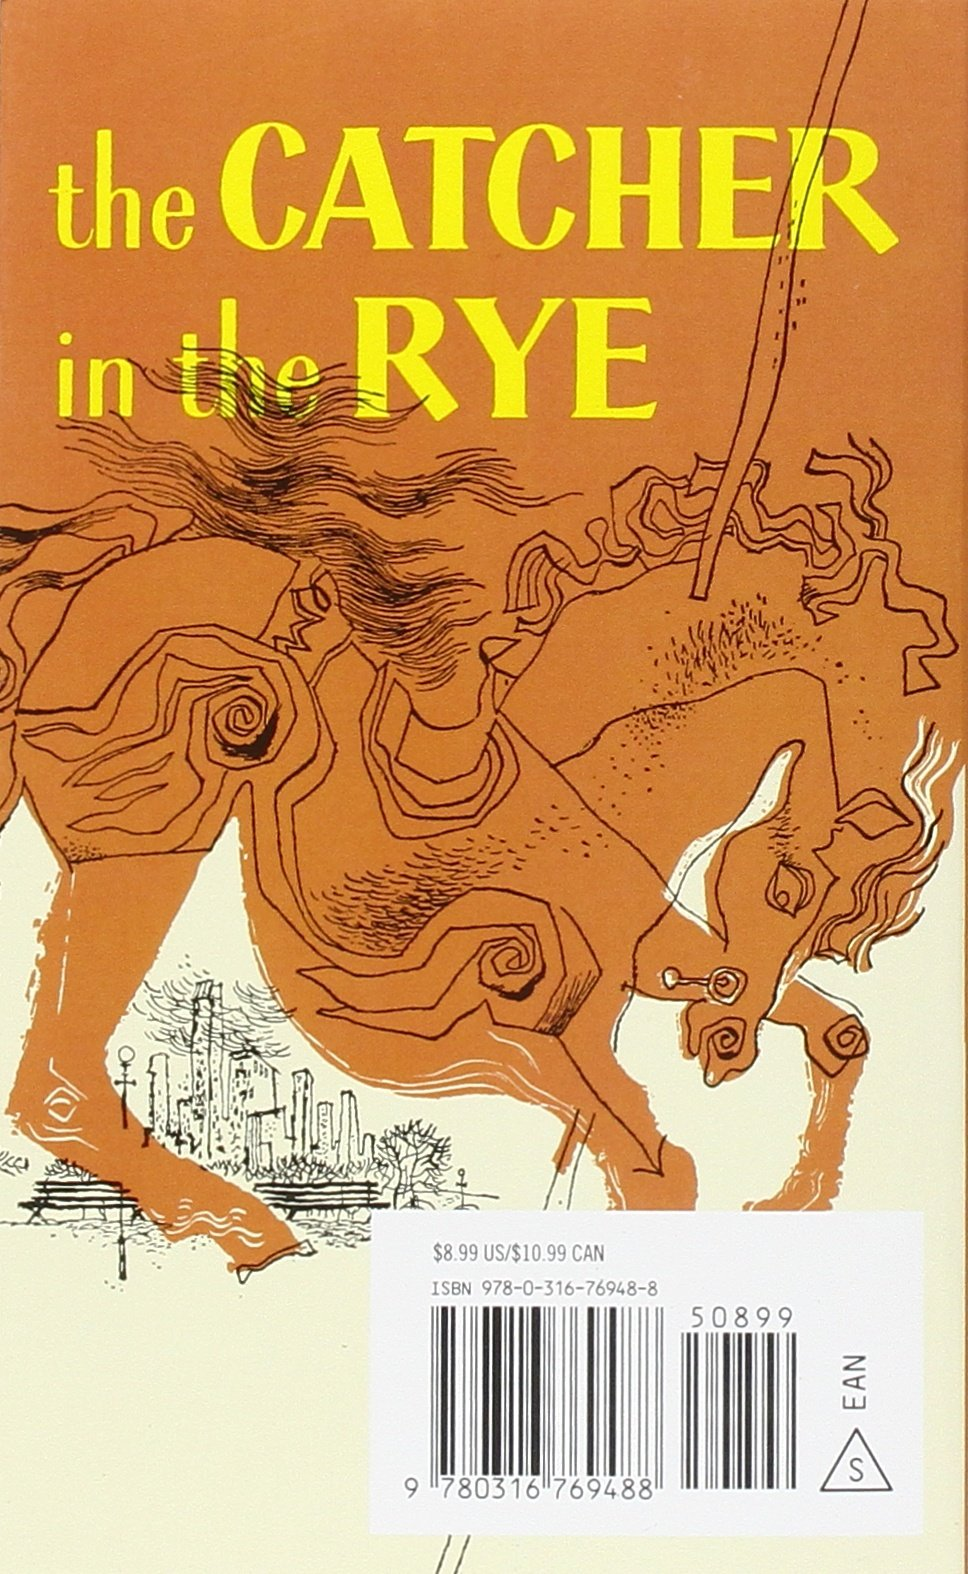 the catcher in the rye j d salinger literature the catcher in the rye j d salinger 9780316769488 literature amazon